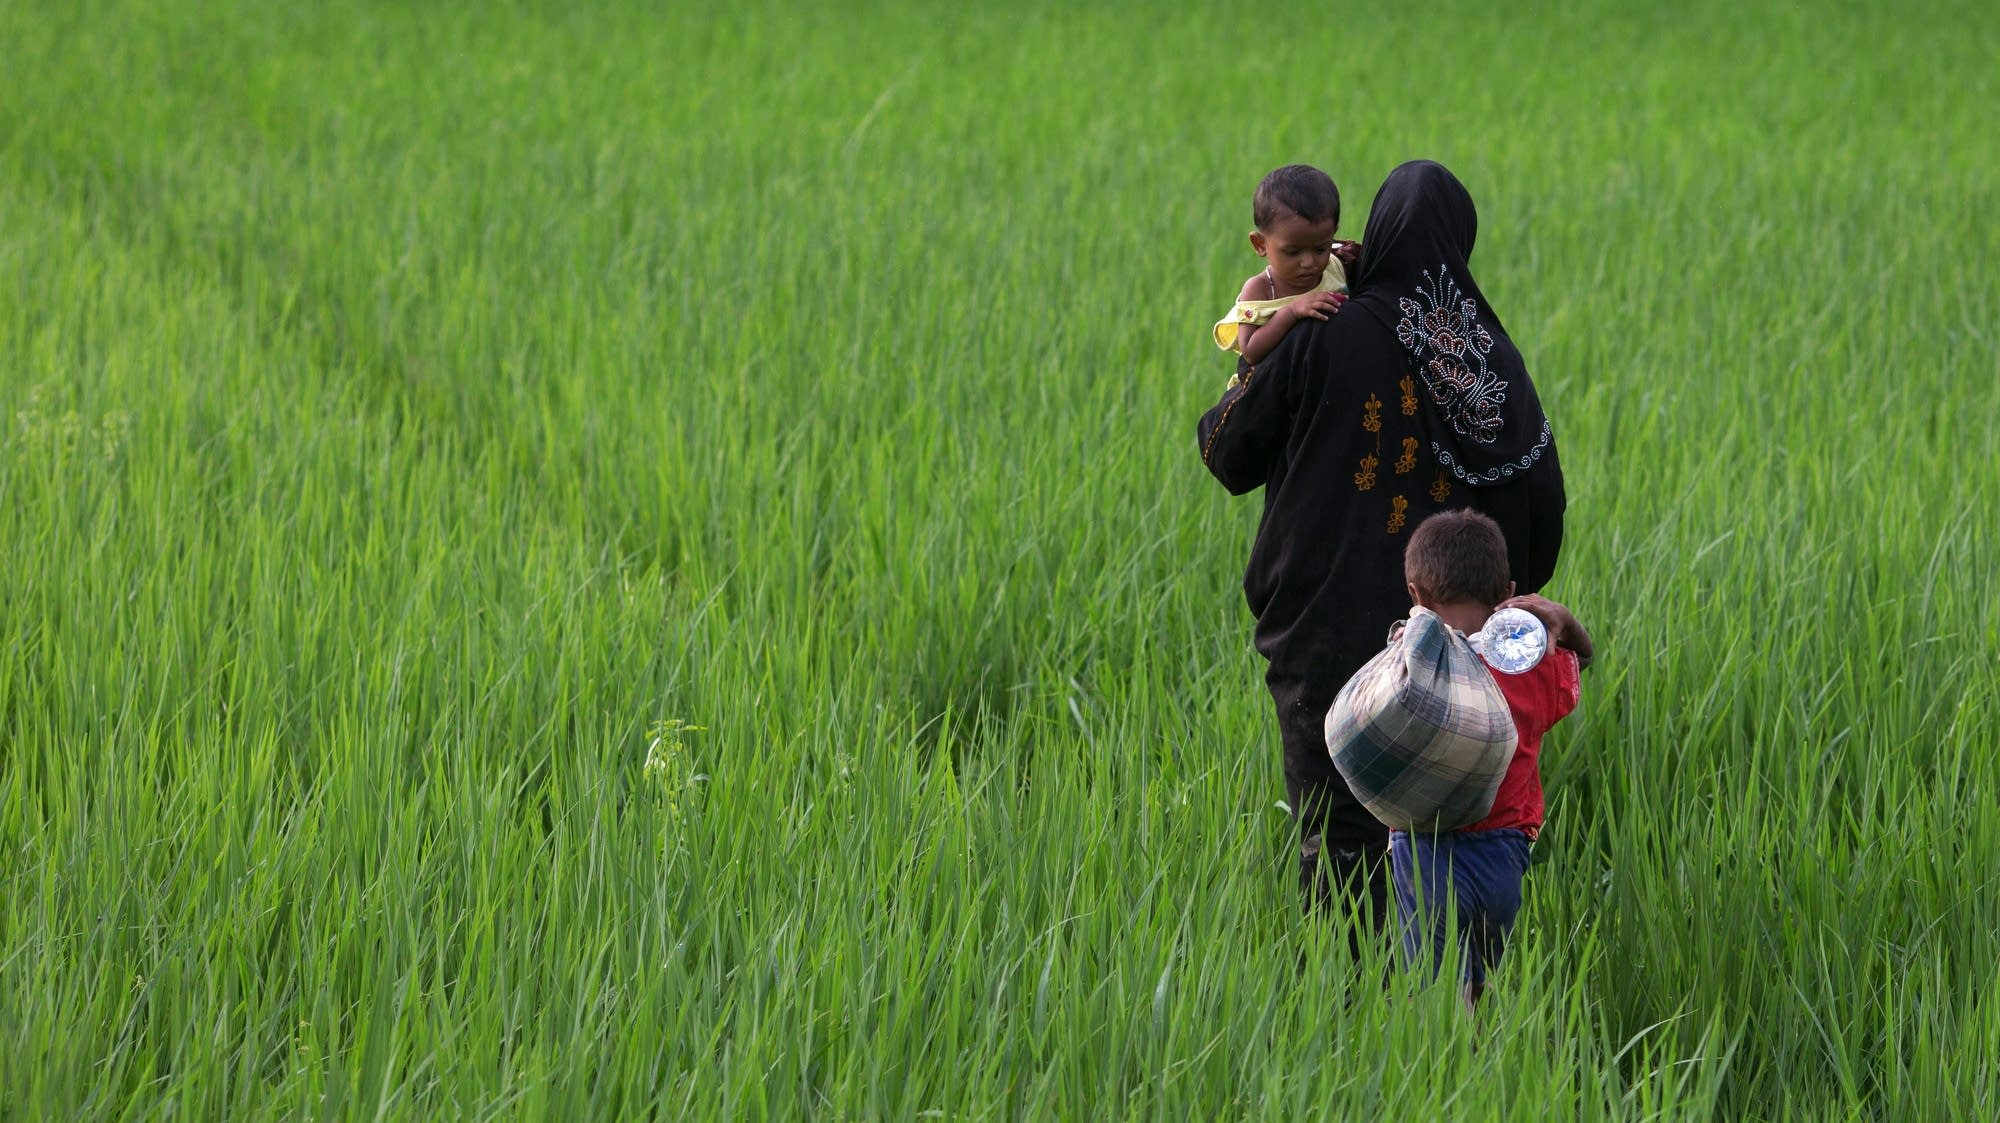 A Rohingya mother carries one child and leads another